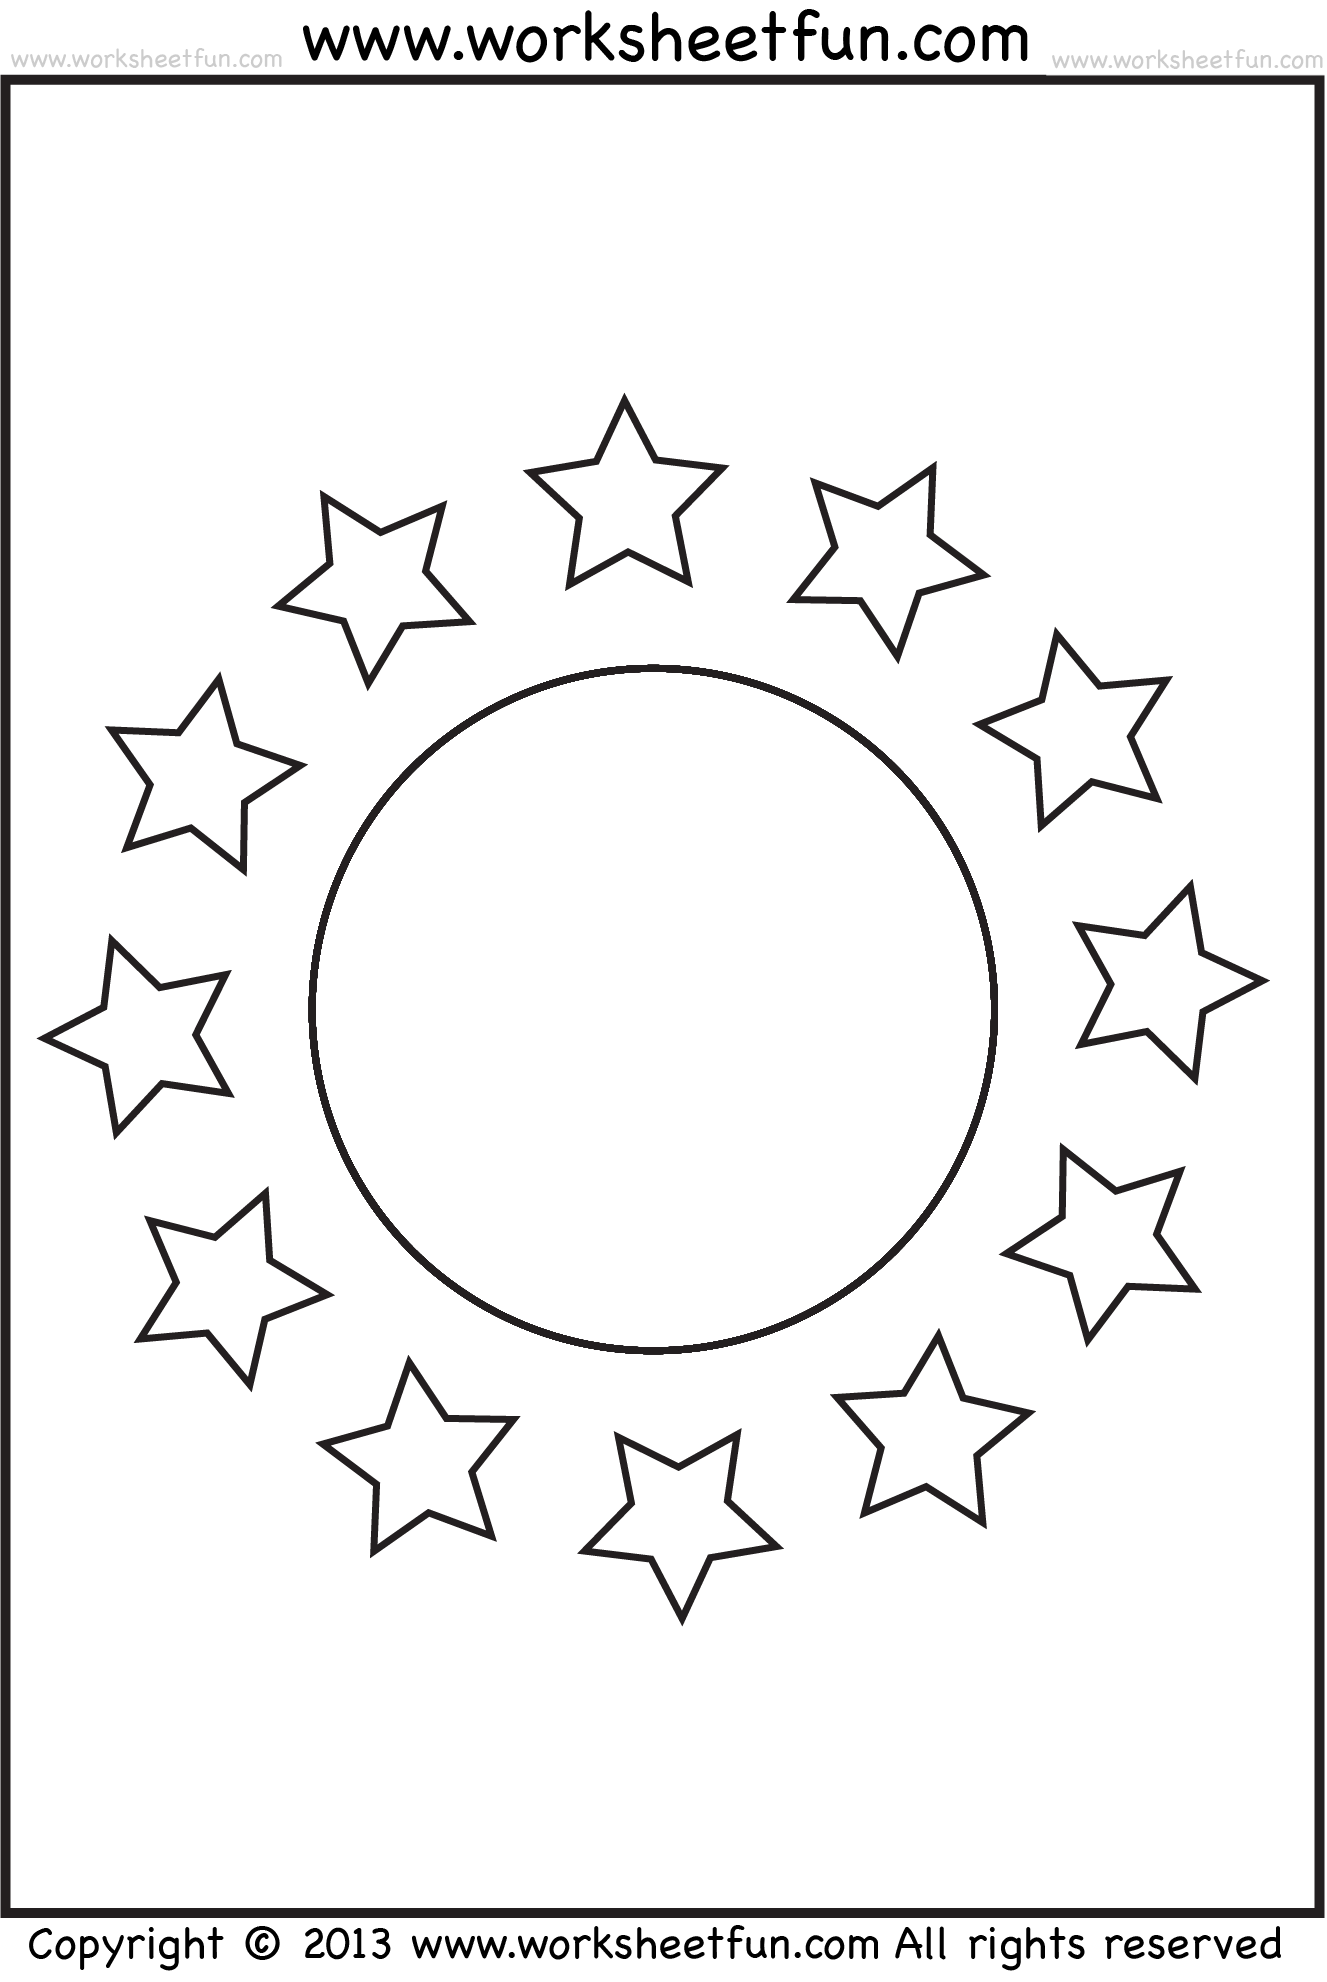 Shape Coloring Worksheet Circle And Stars Free Printable Worksheets Worksheetfun